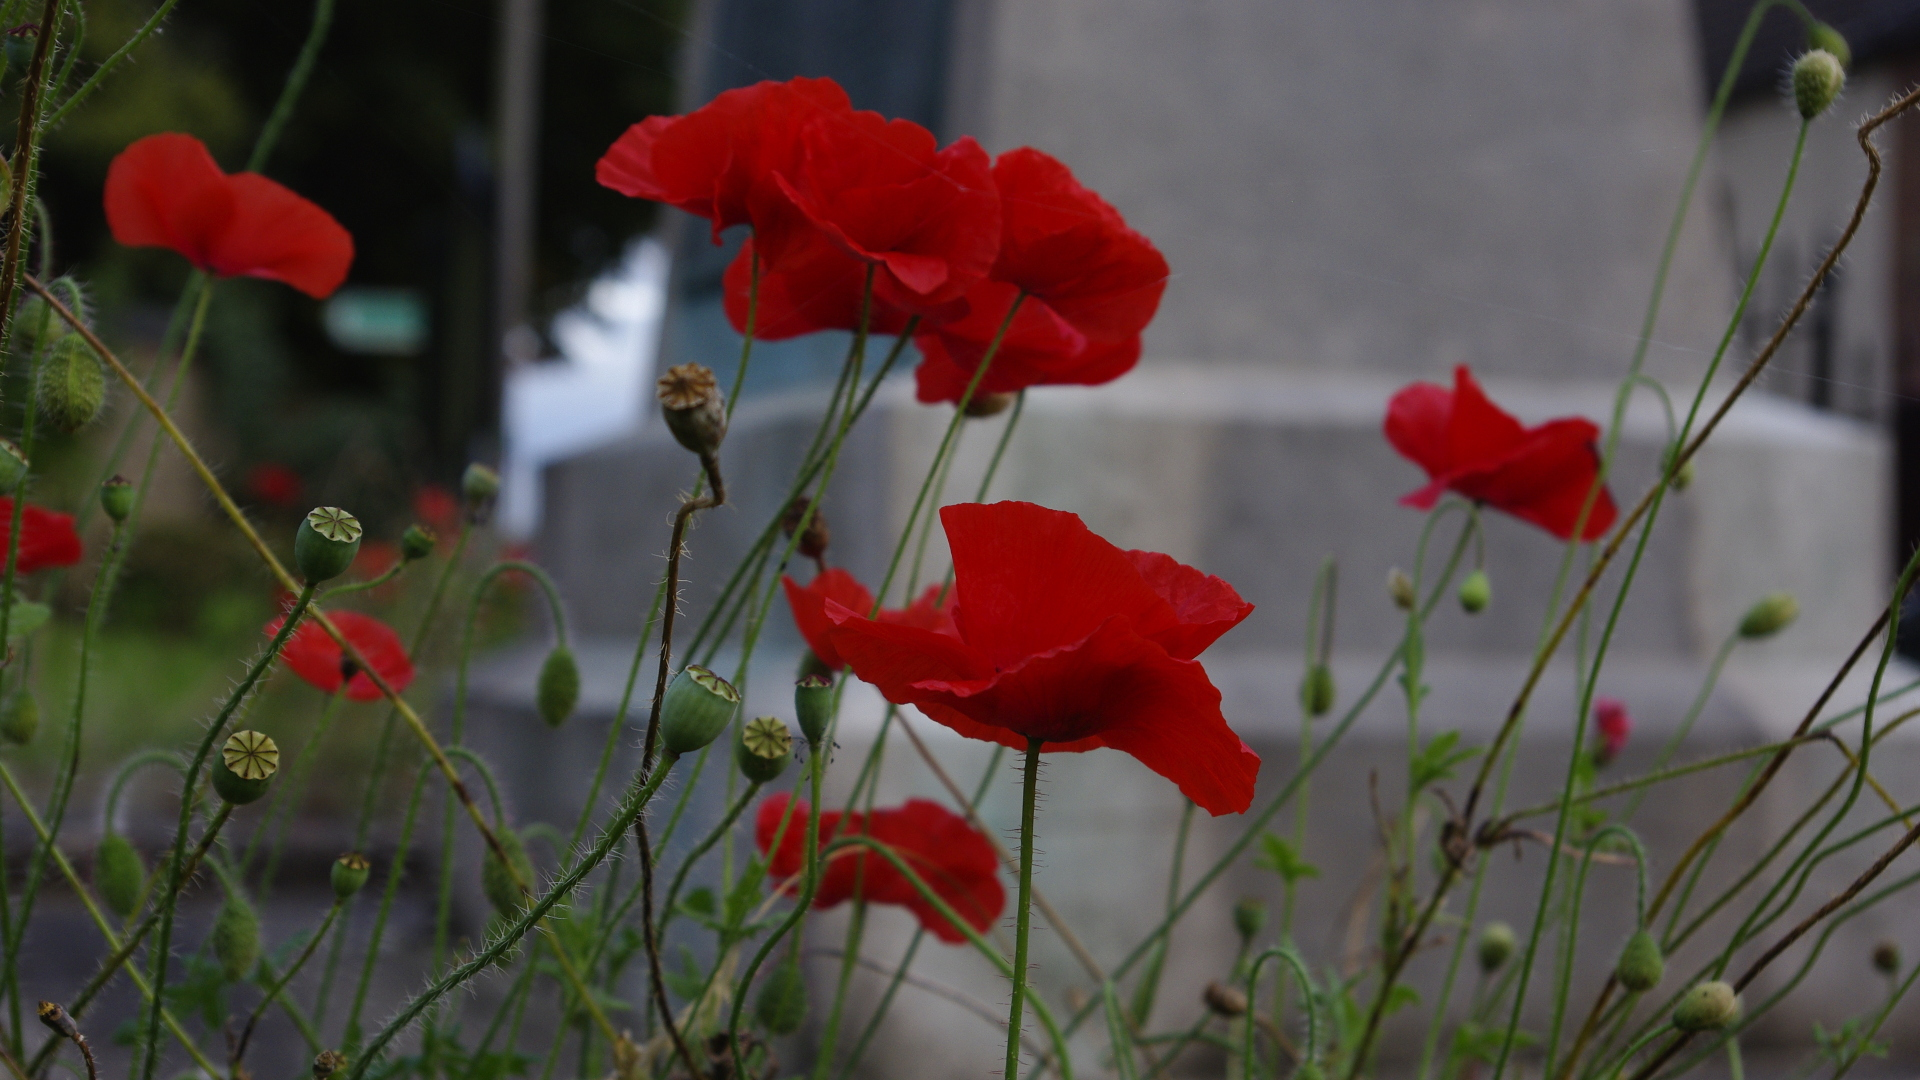 Poppies - 15 October 2015